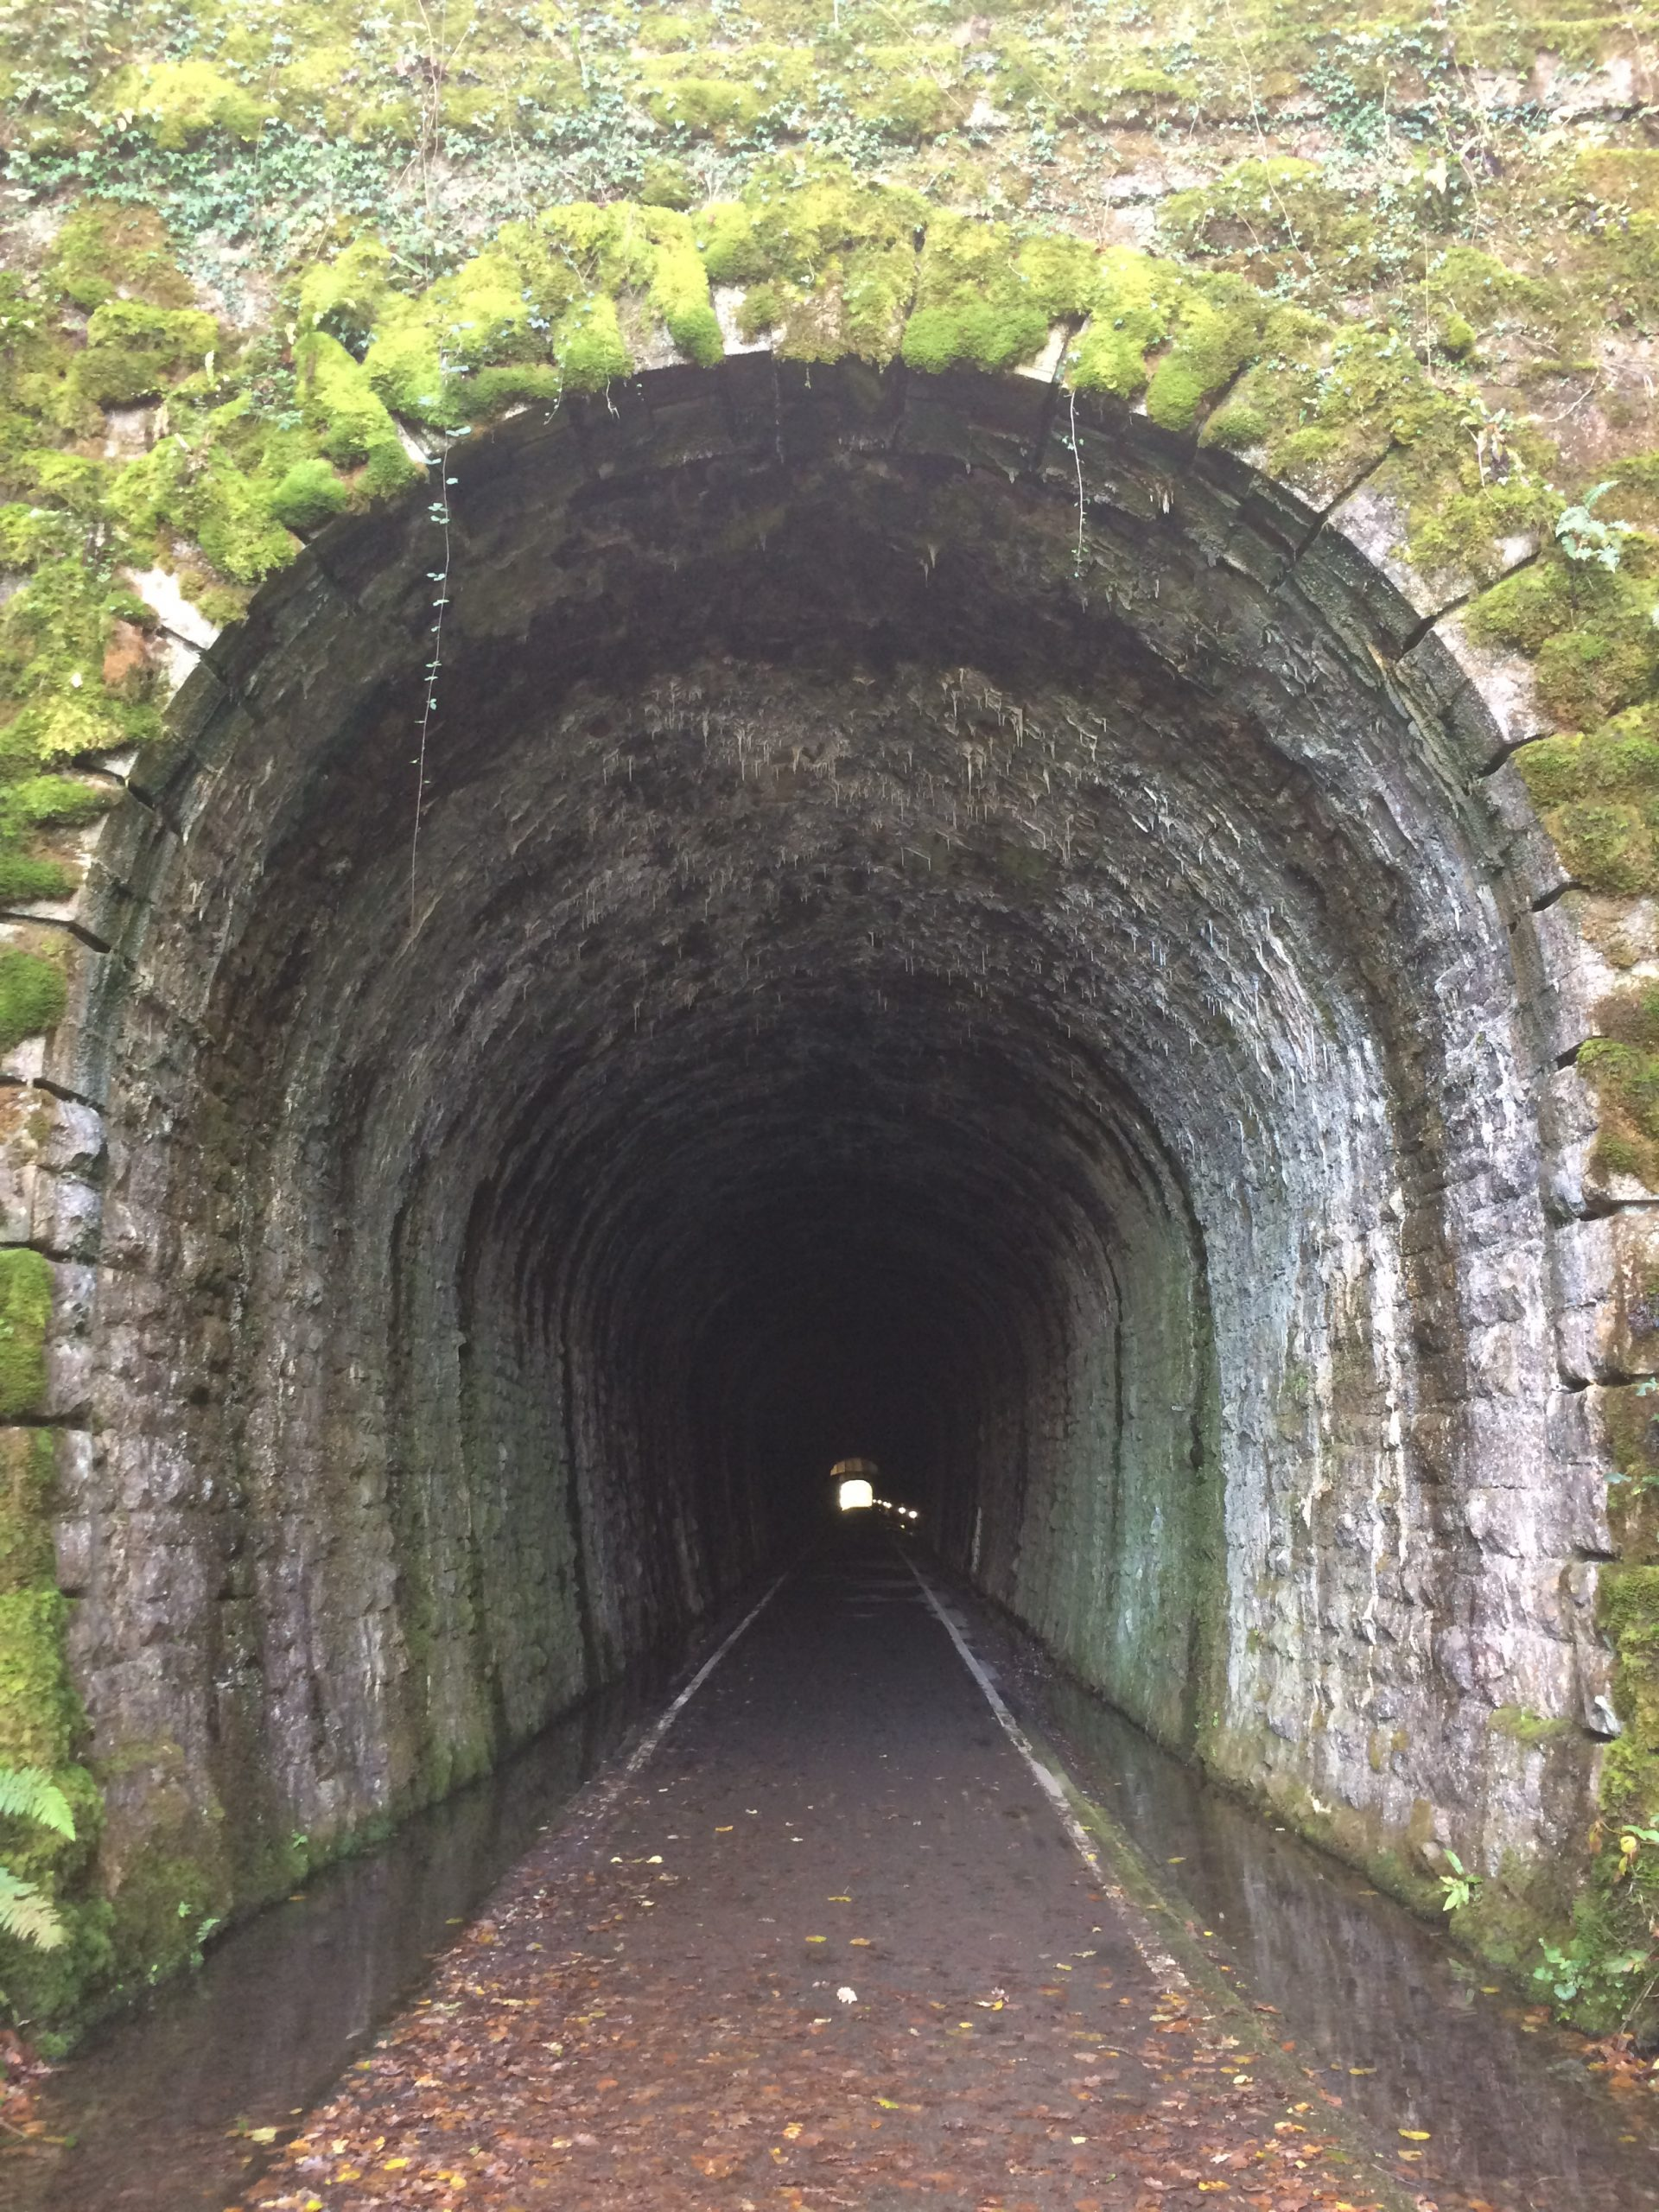 July update – light at the end of the tunnel